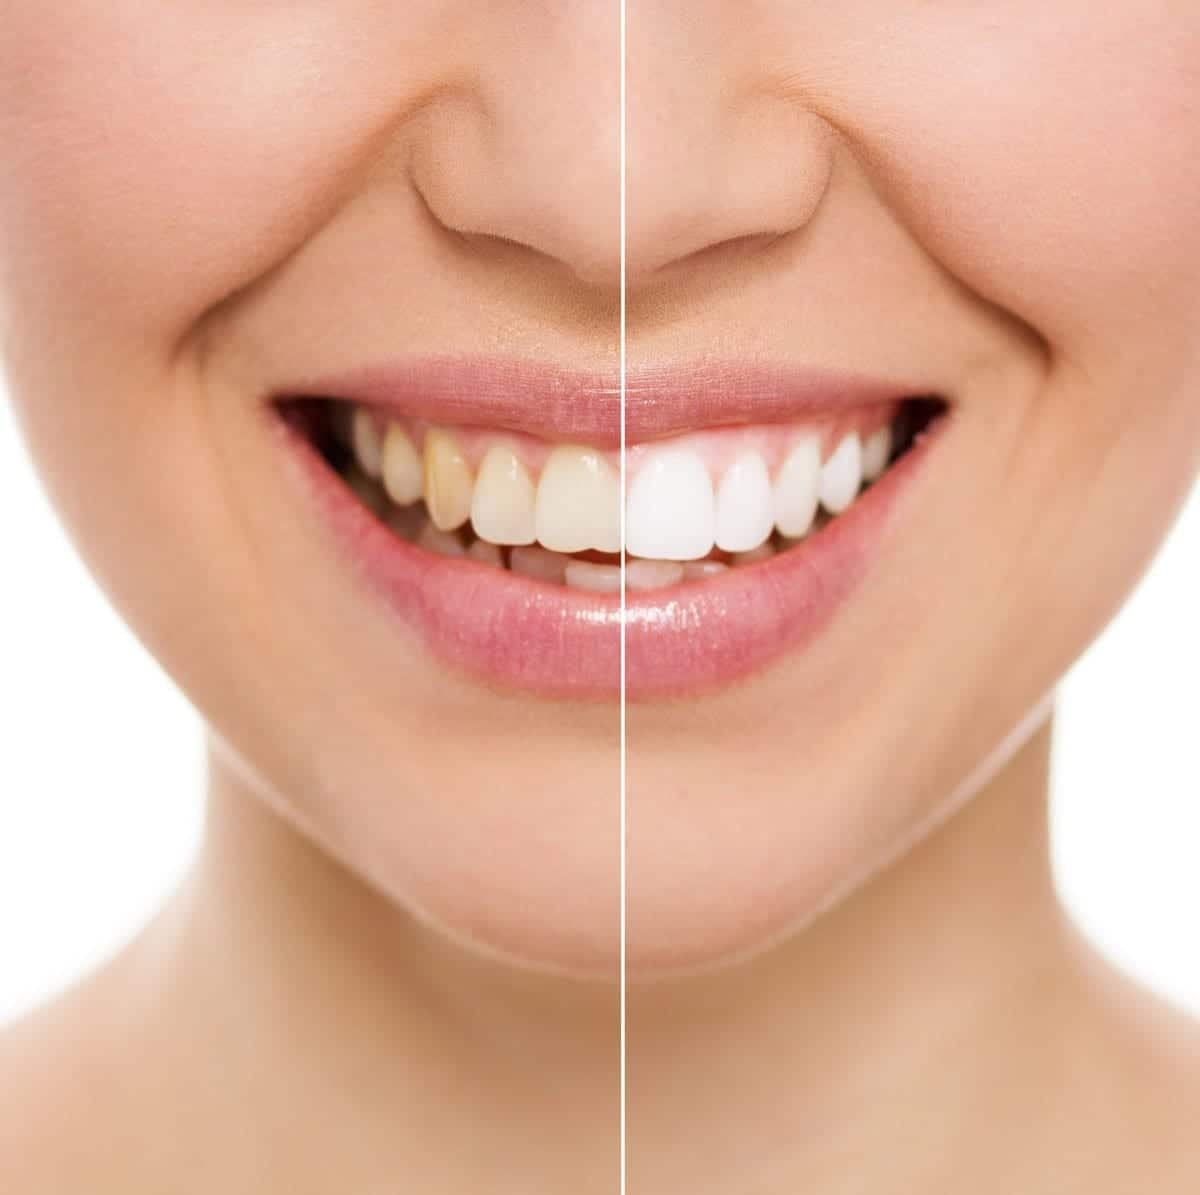 3 Ways to Whiten Your Teeth